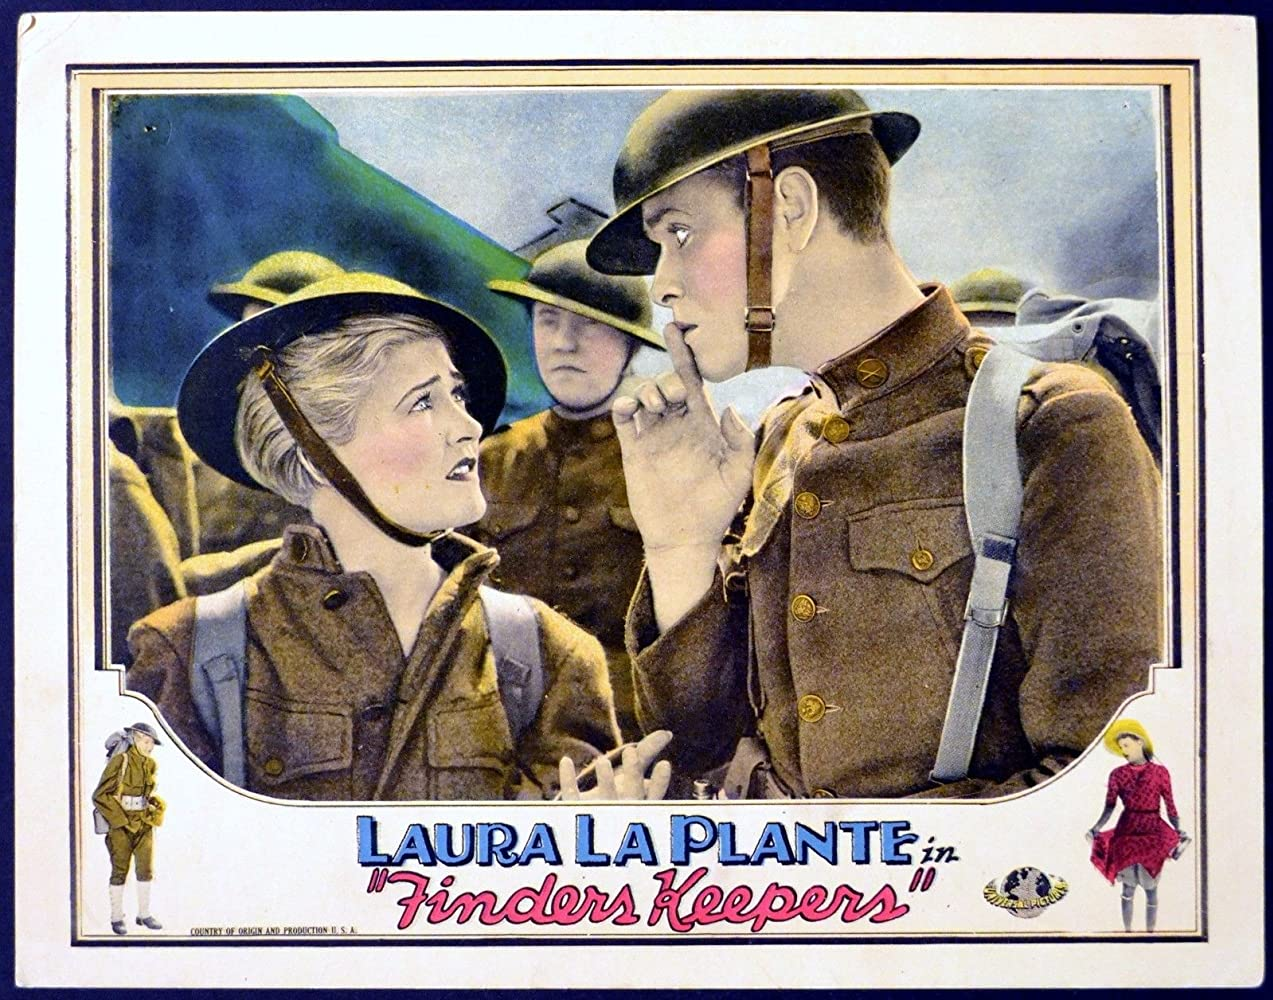 Finders Keepers (1928)